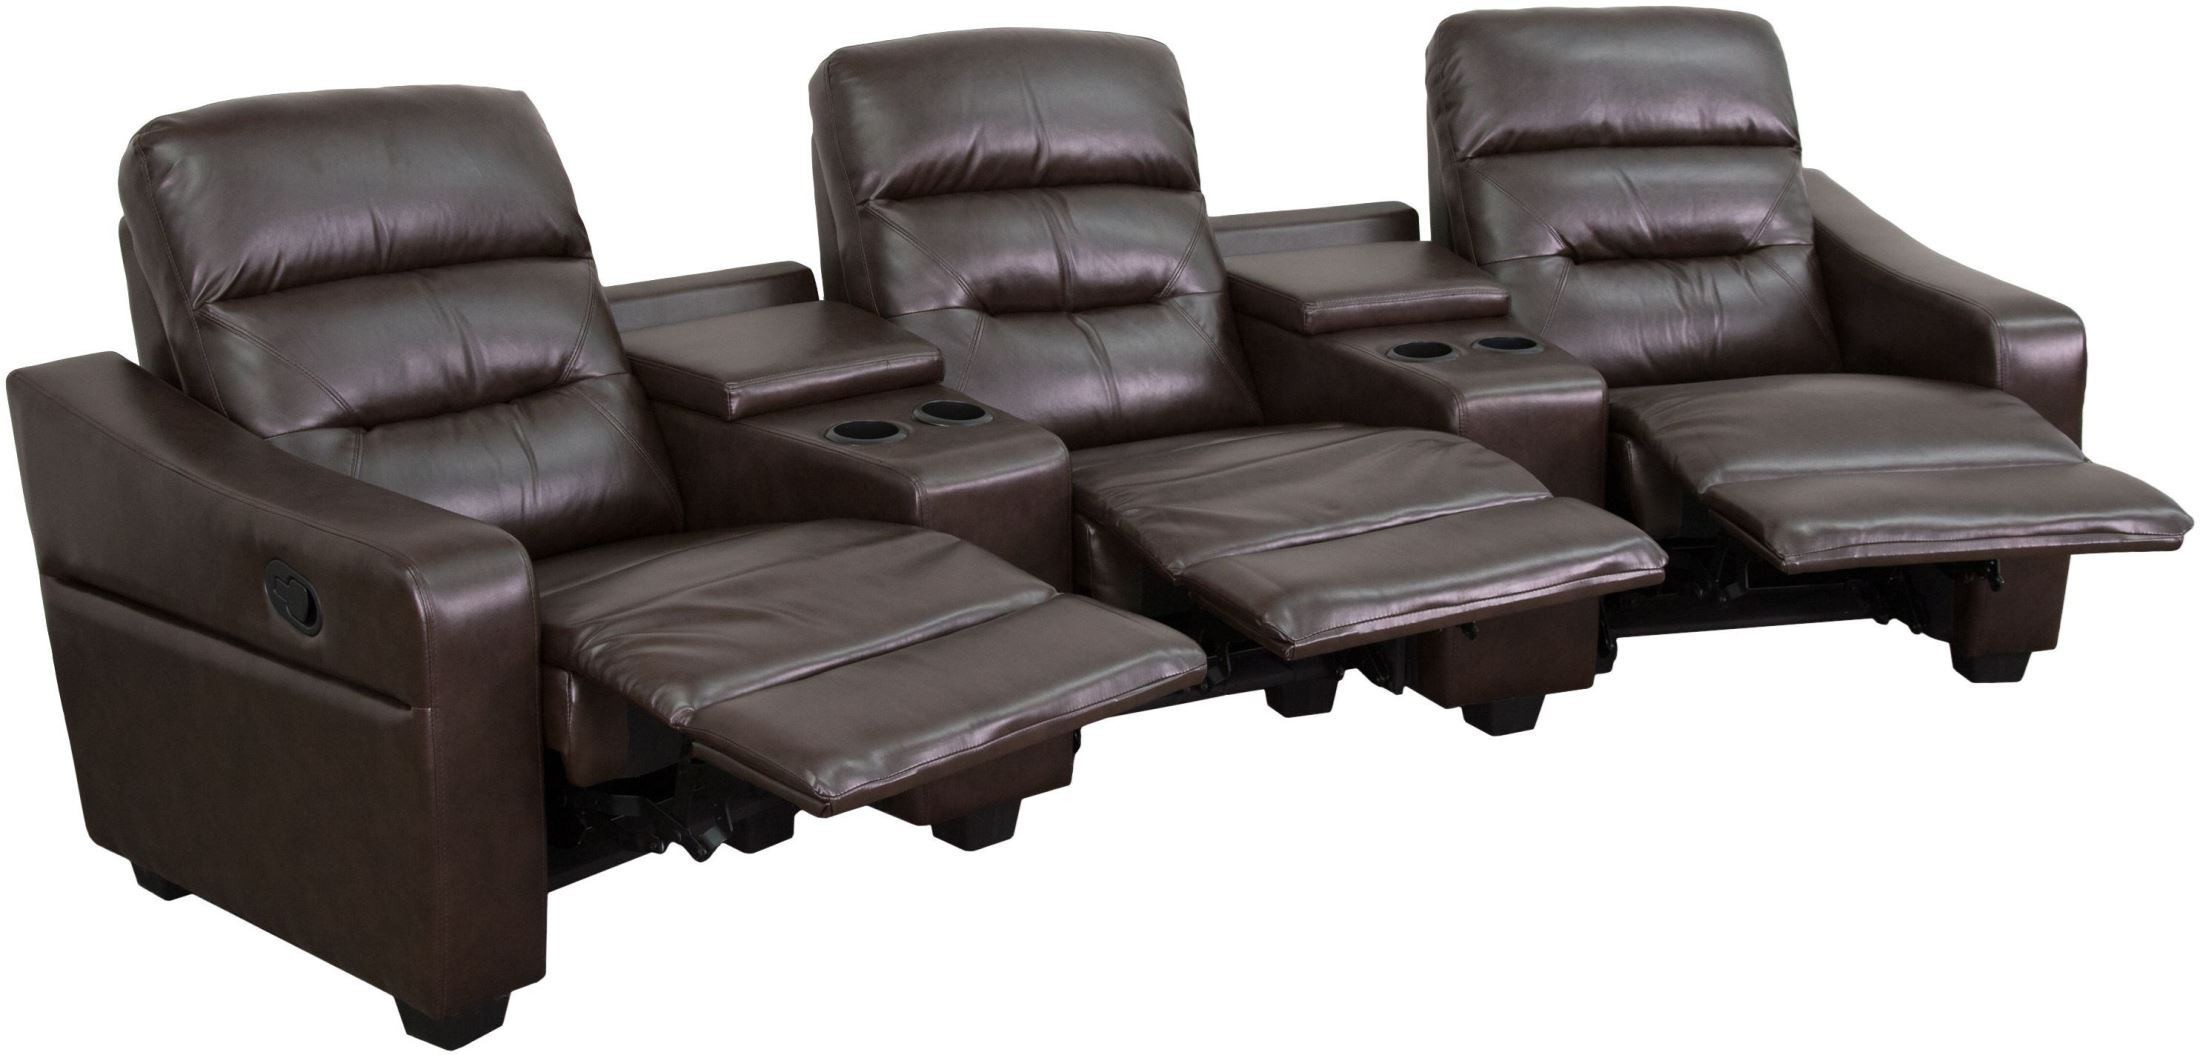 Futura Series 3-Seat Reclining Brown Leather Theater Seating, BT-70380-3-BRN-GG, Renegade Furniture